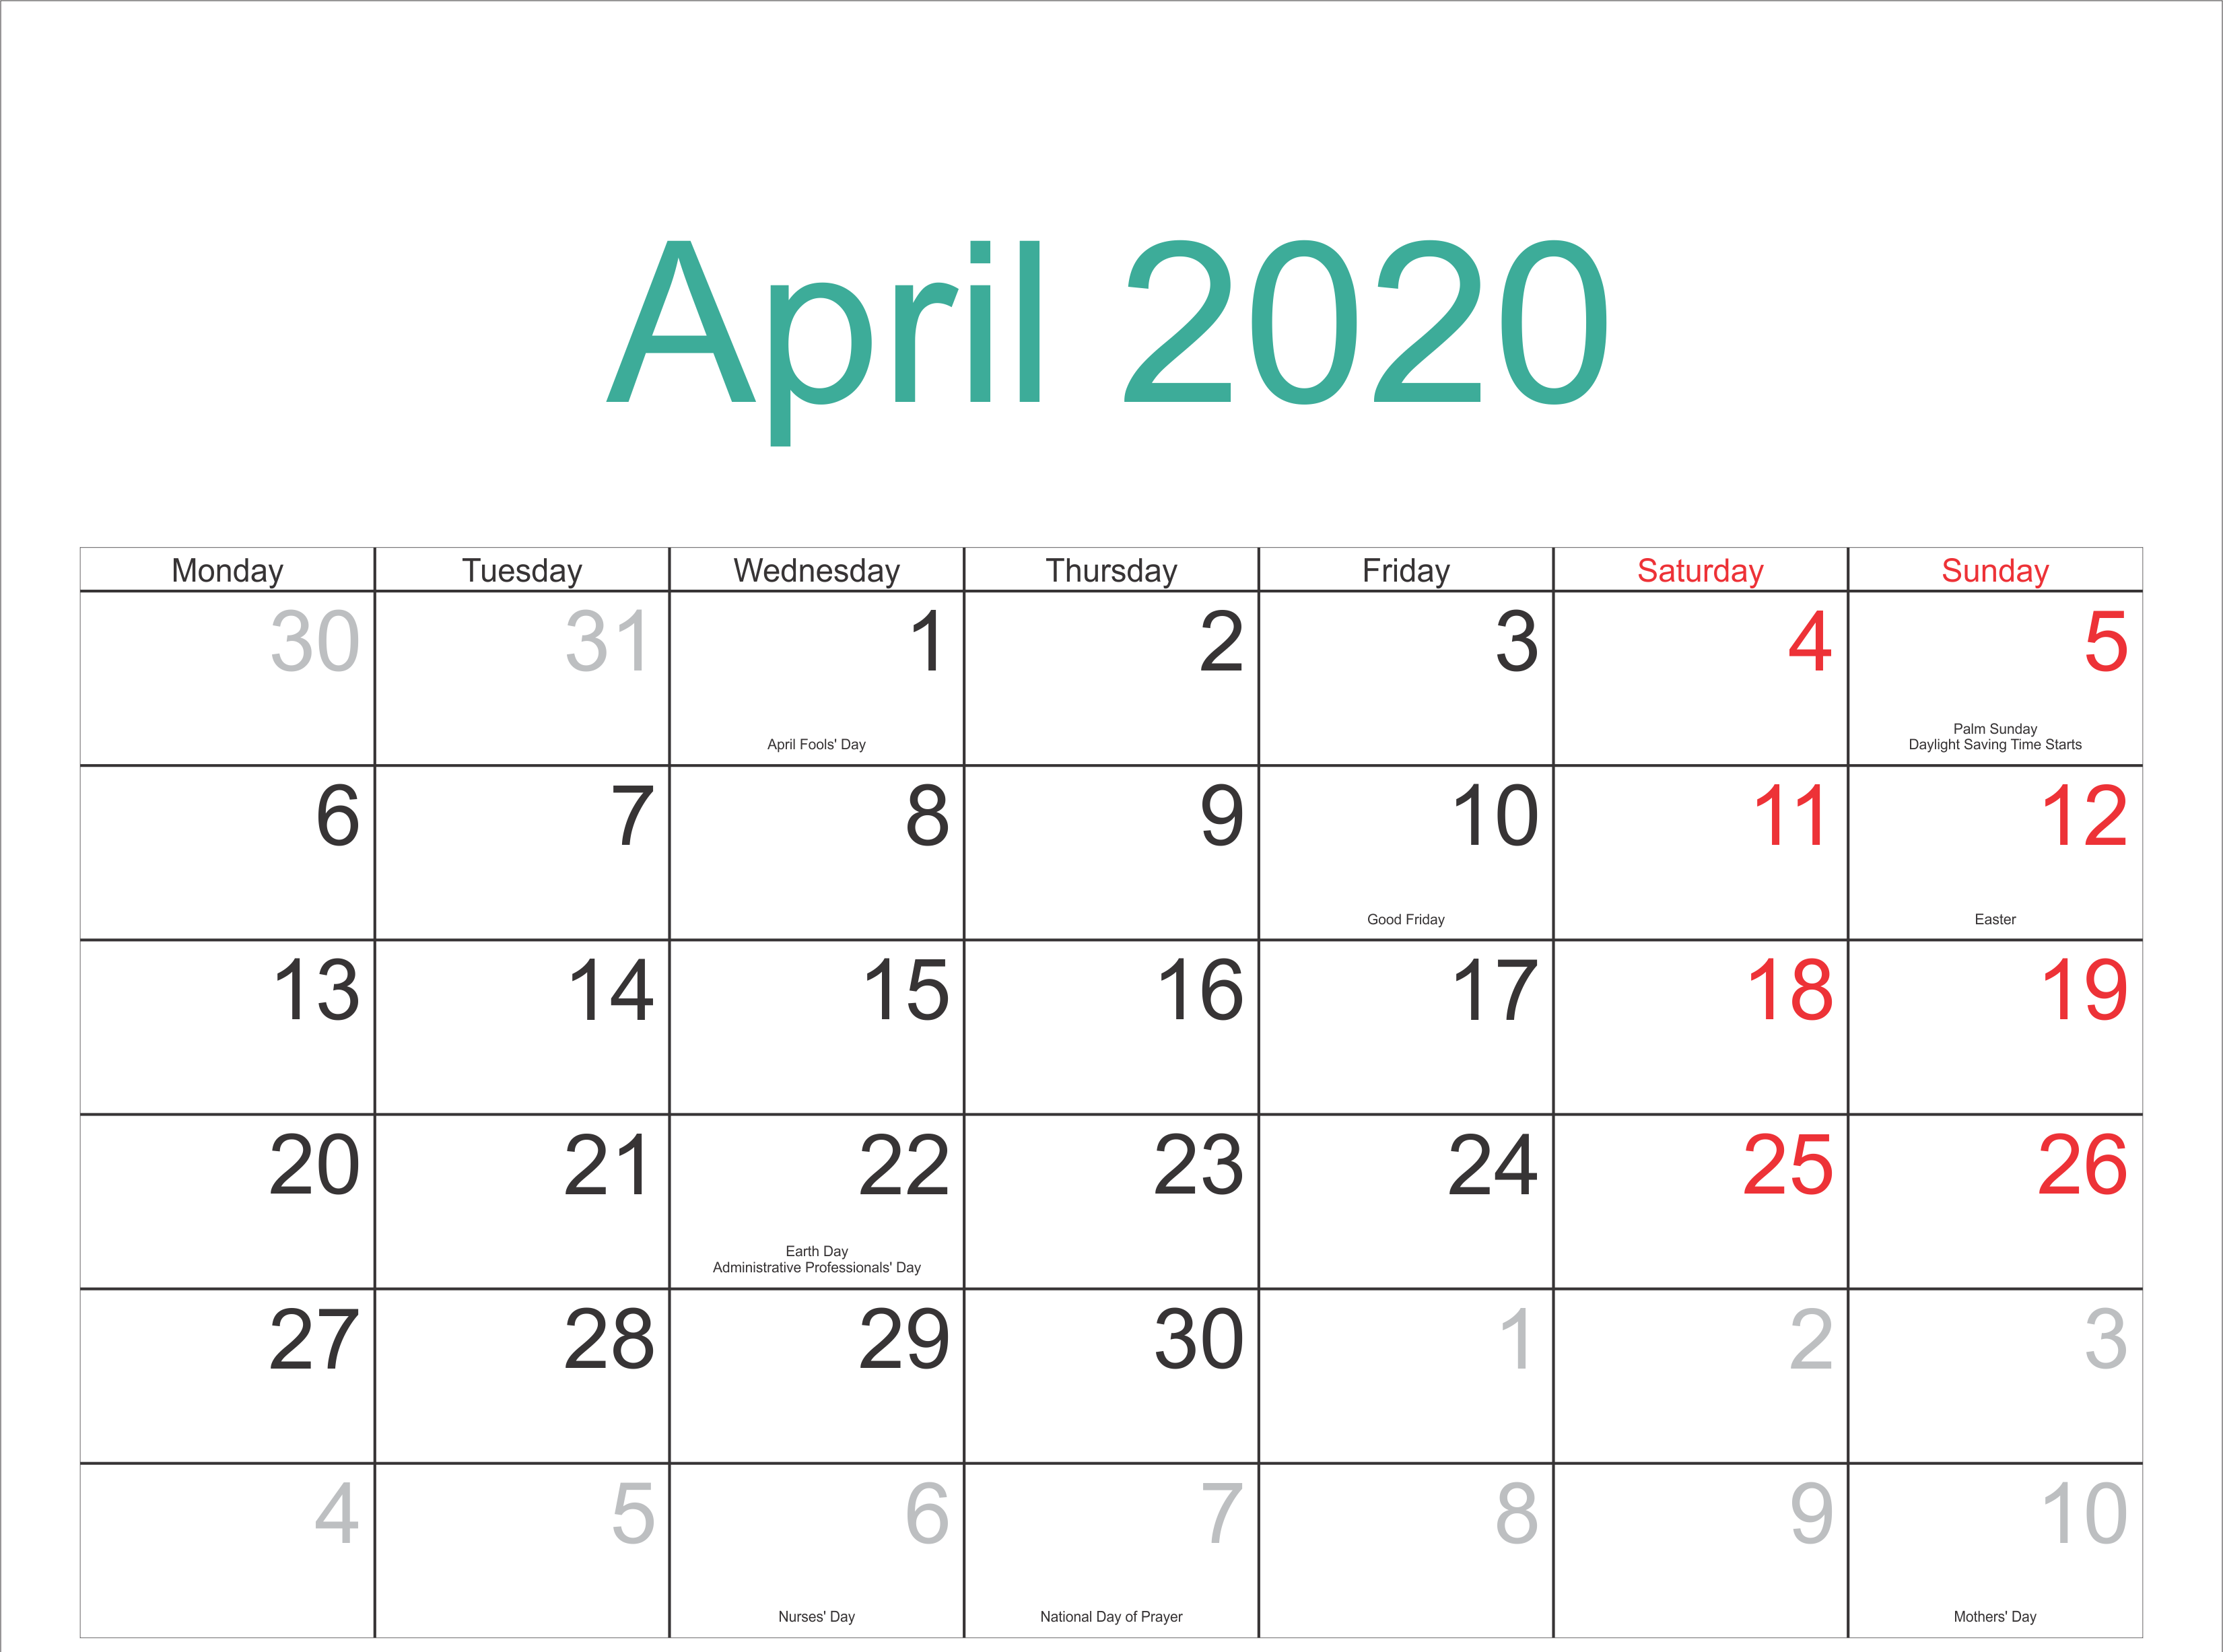 Holidays Calendar April 2020